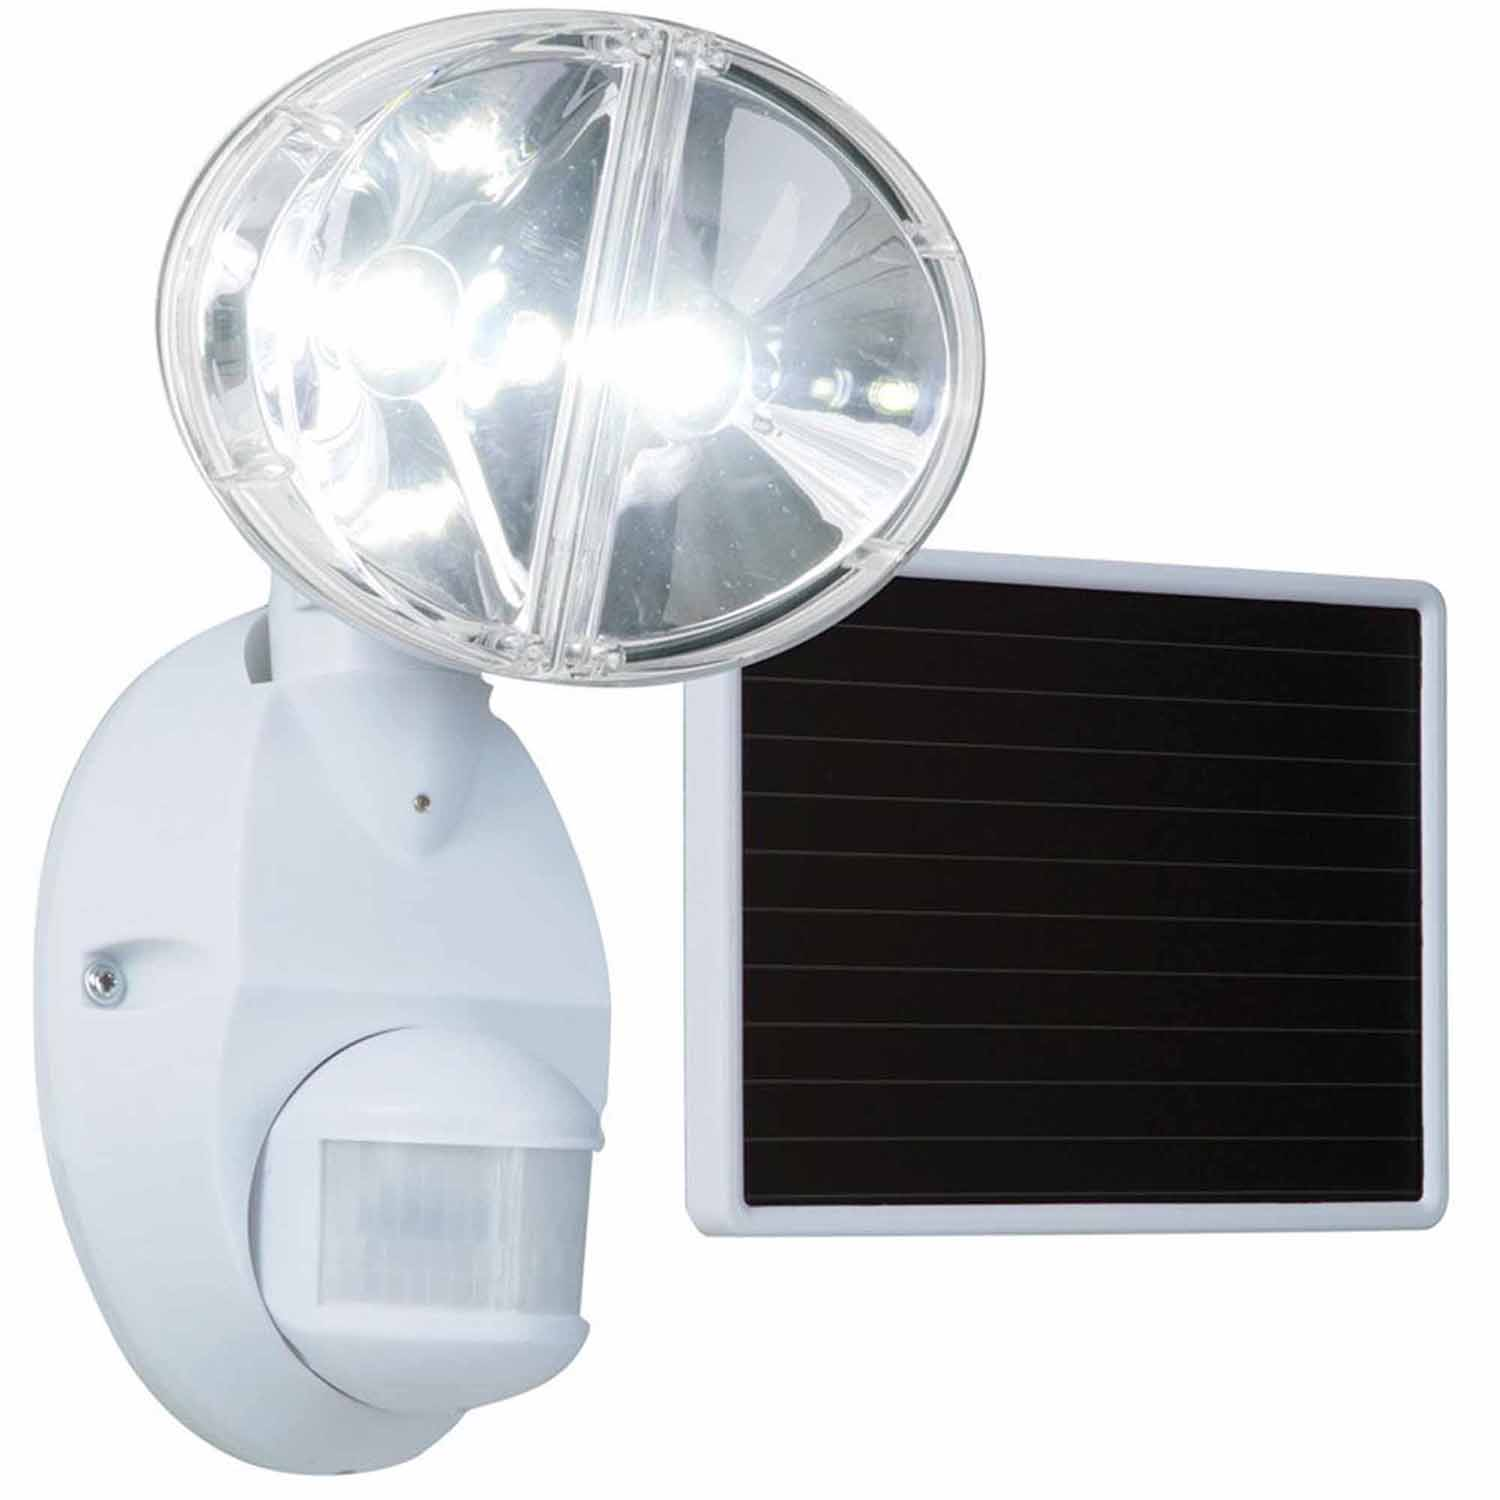 Cooper MSL180 Motion Activated Floodlight, LED